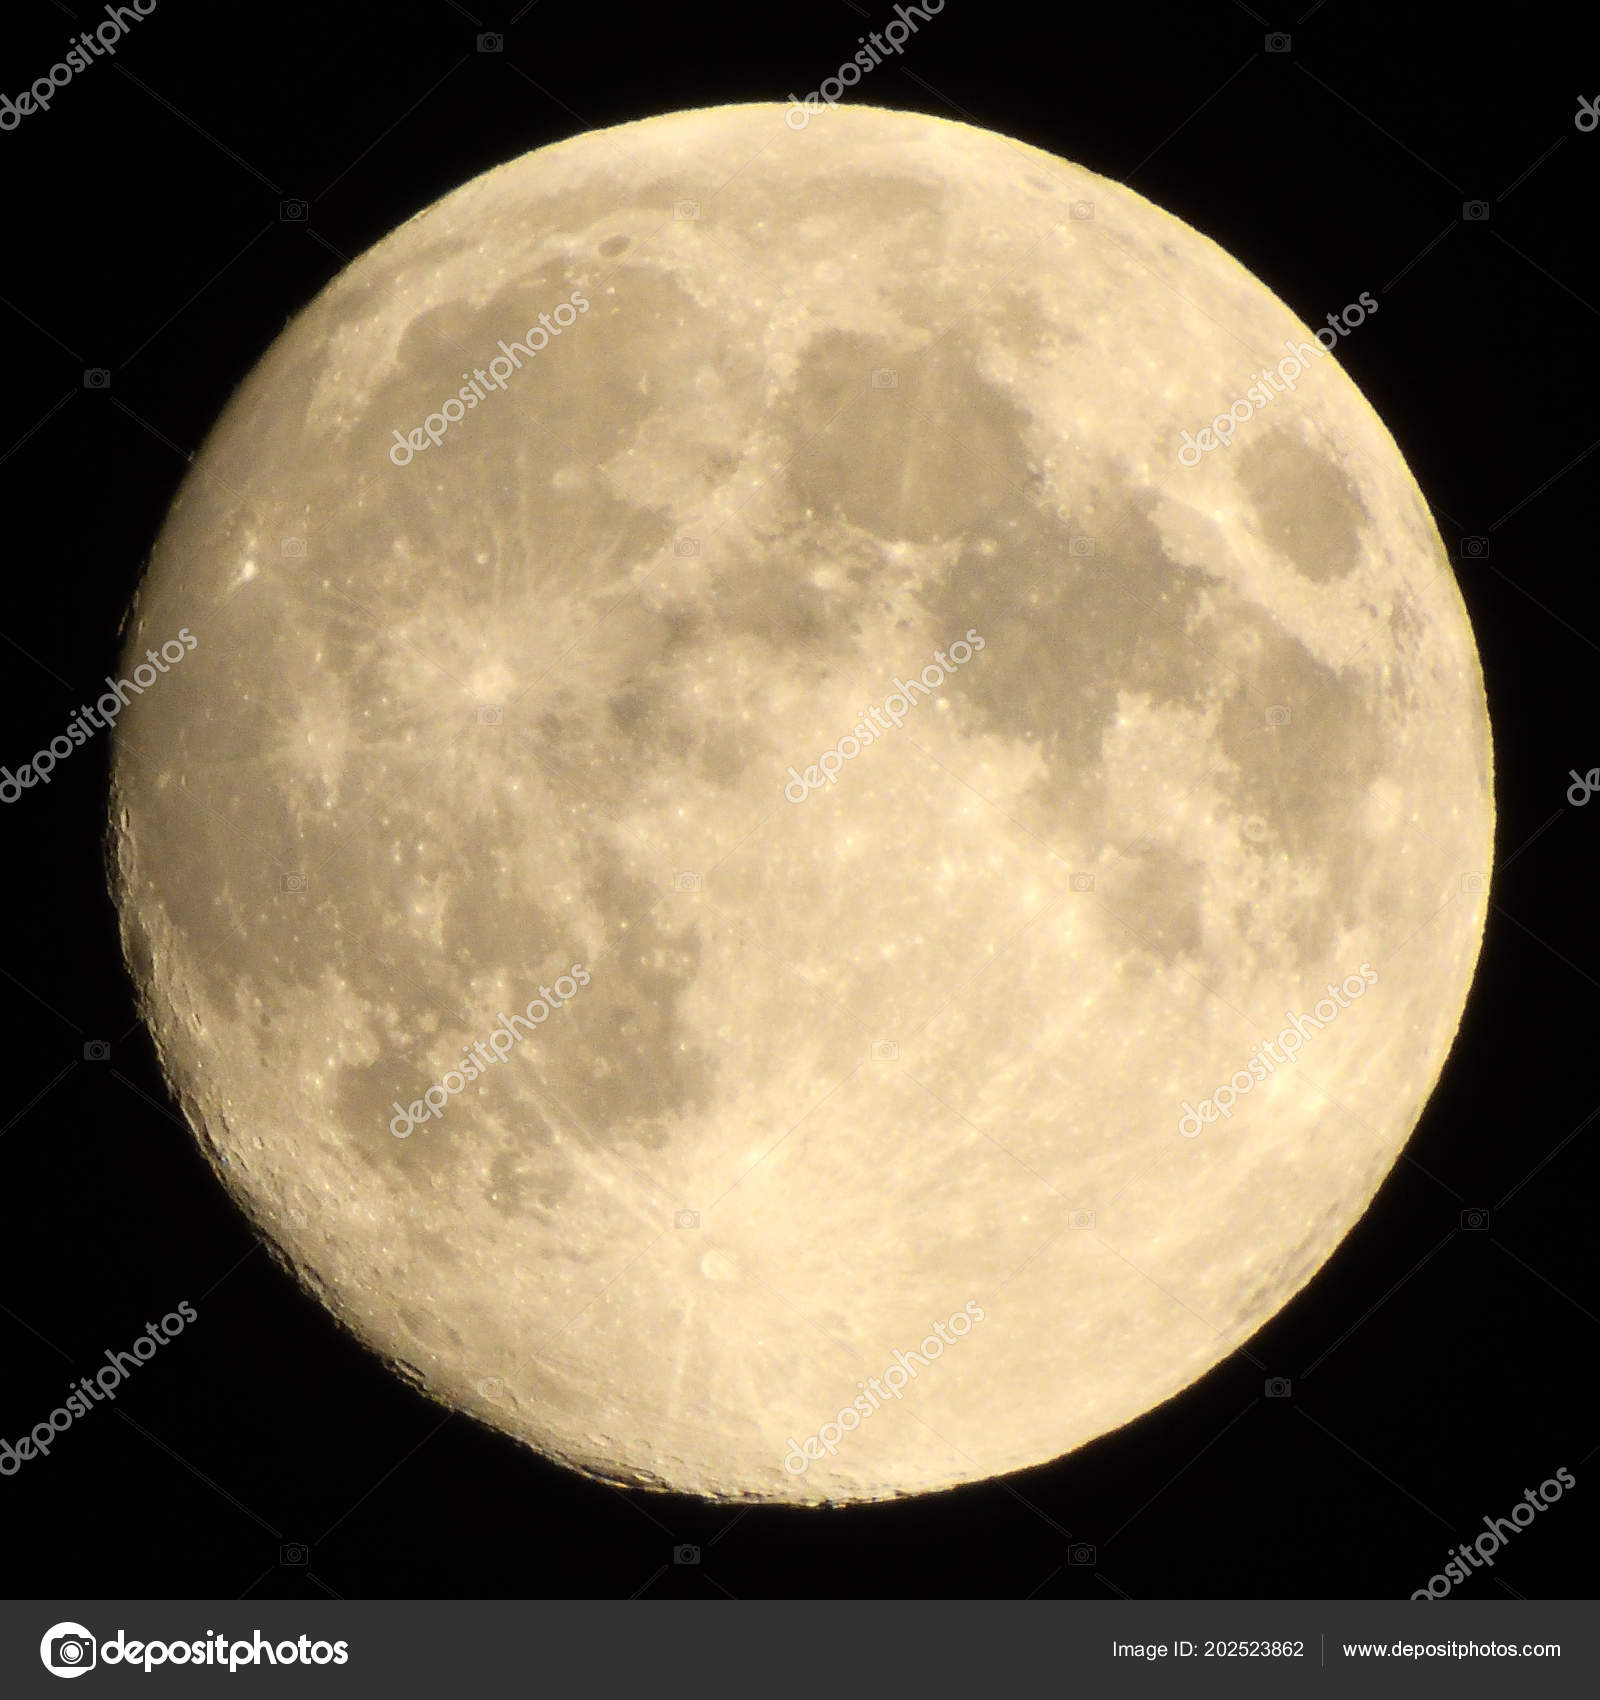 what is a waxing gibbous moon